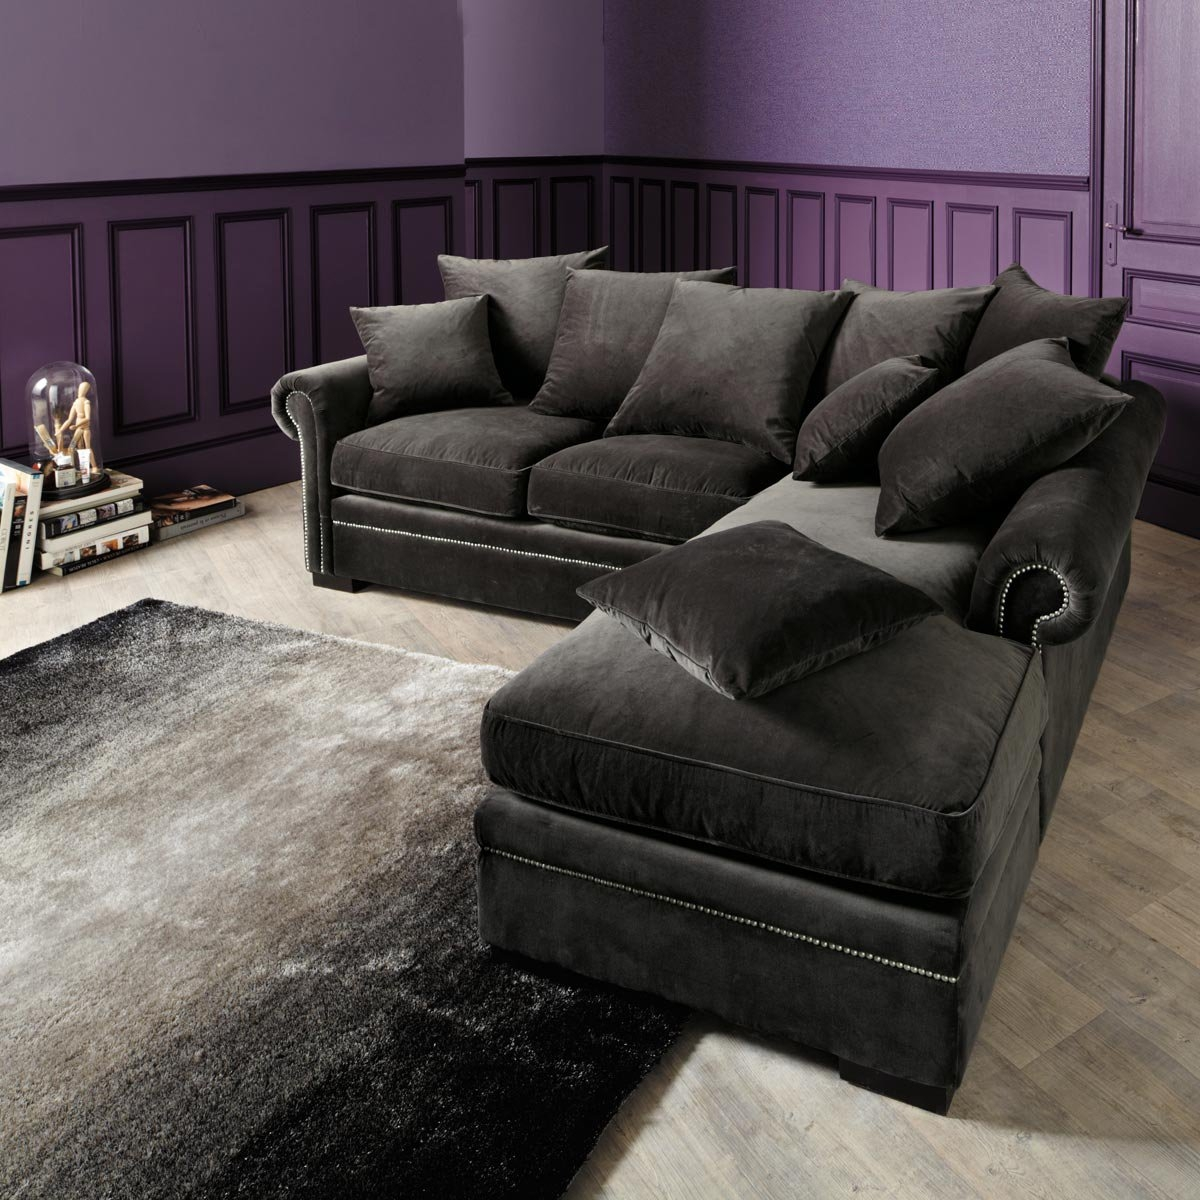 Dark Grey Sofa With Chaise Modern Sofas Within Charcoal Grey Sofa (Image 4 of 15)